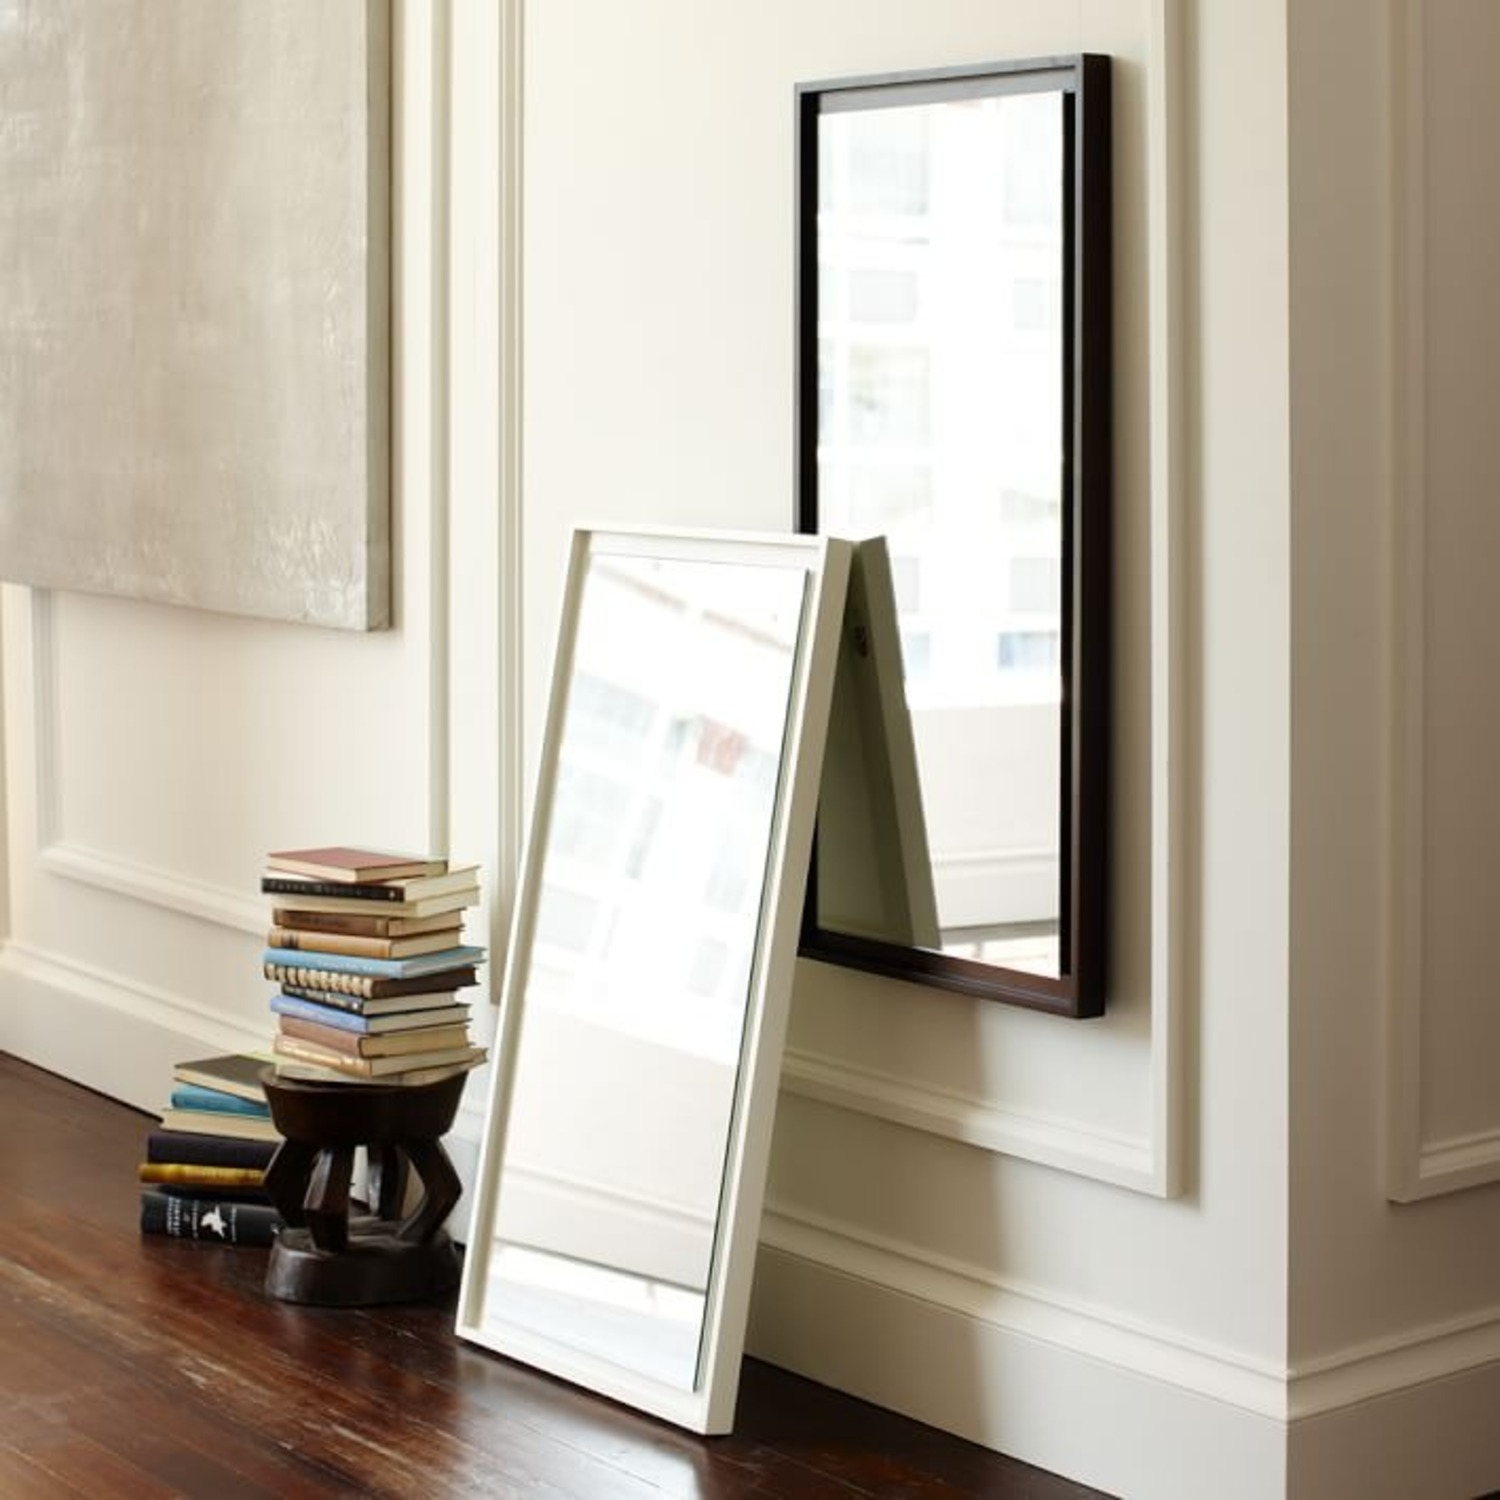 West Elm Floating Wood Wall Mirror, White Lacquer - image-2